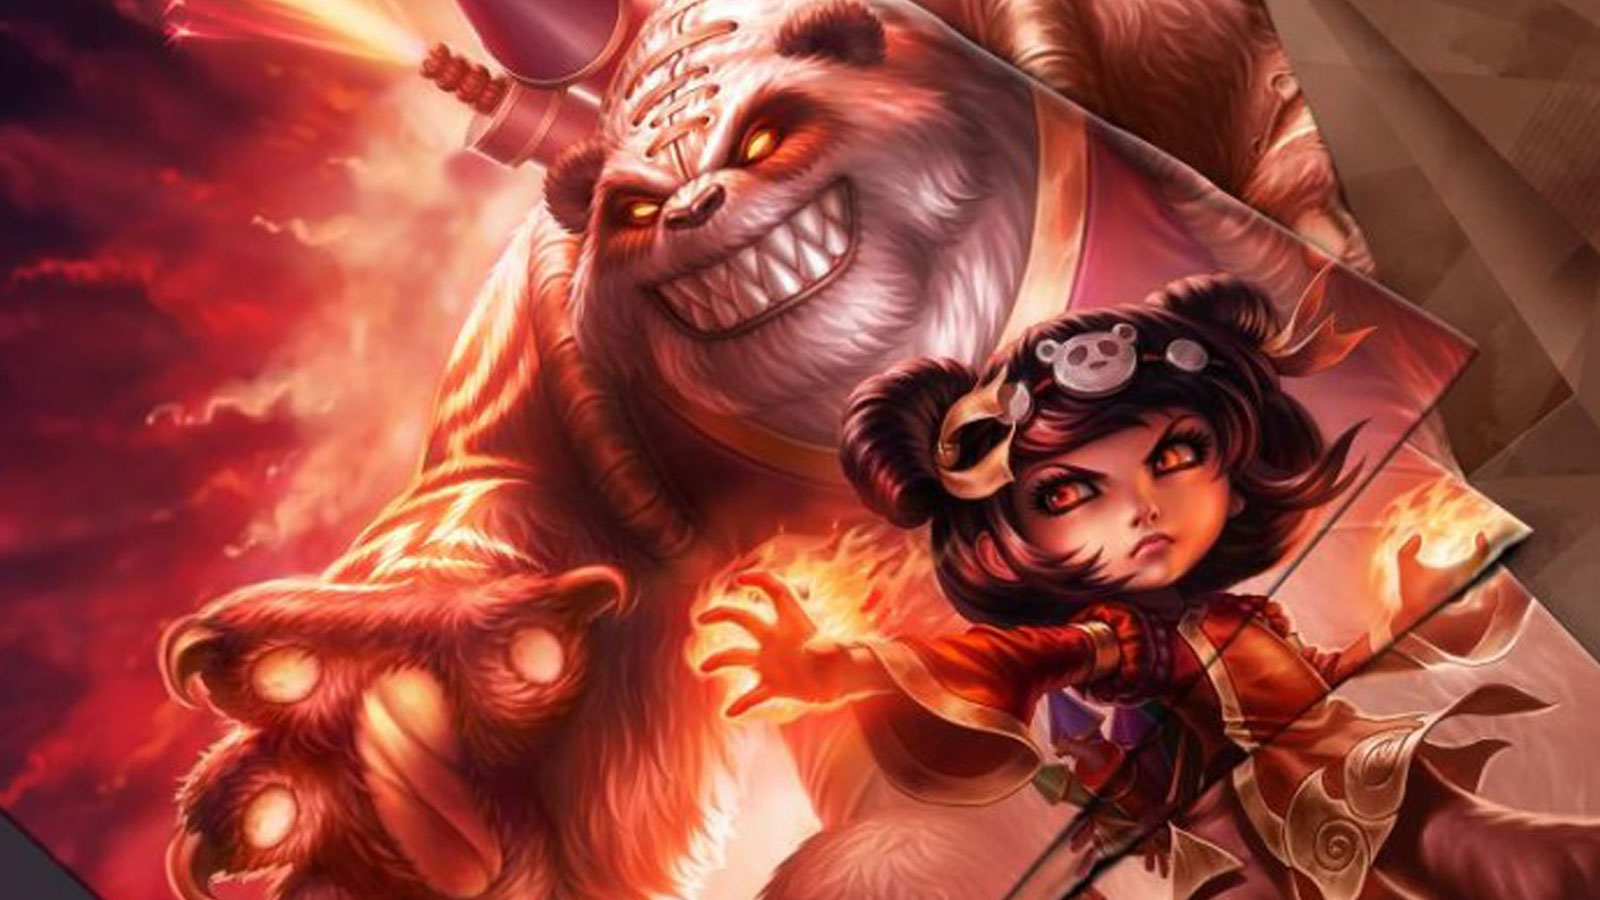 League of Legends character Annie and her giant pet bear menace an enemy against a fiery backdrop